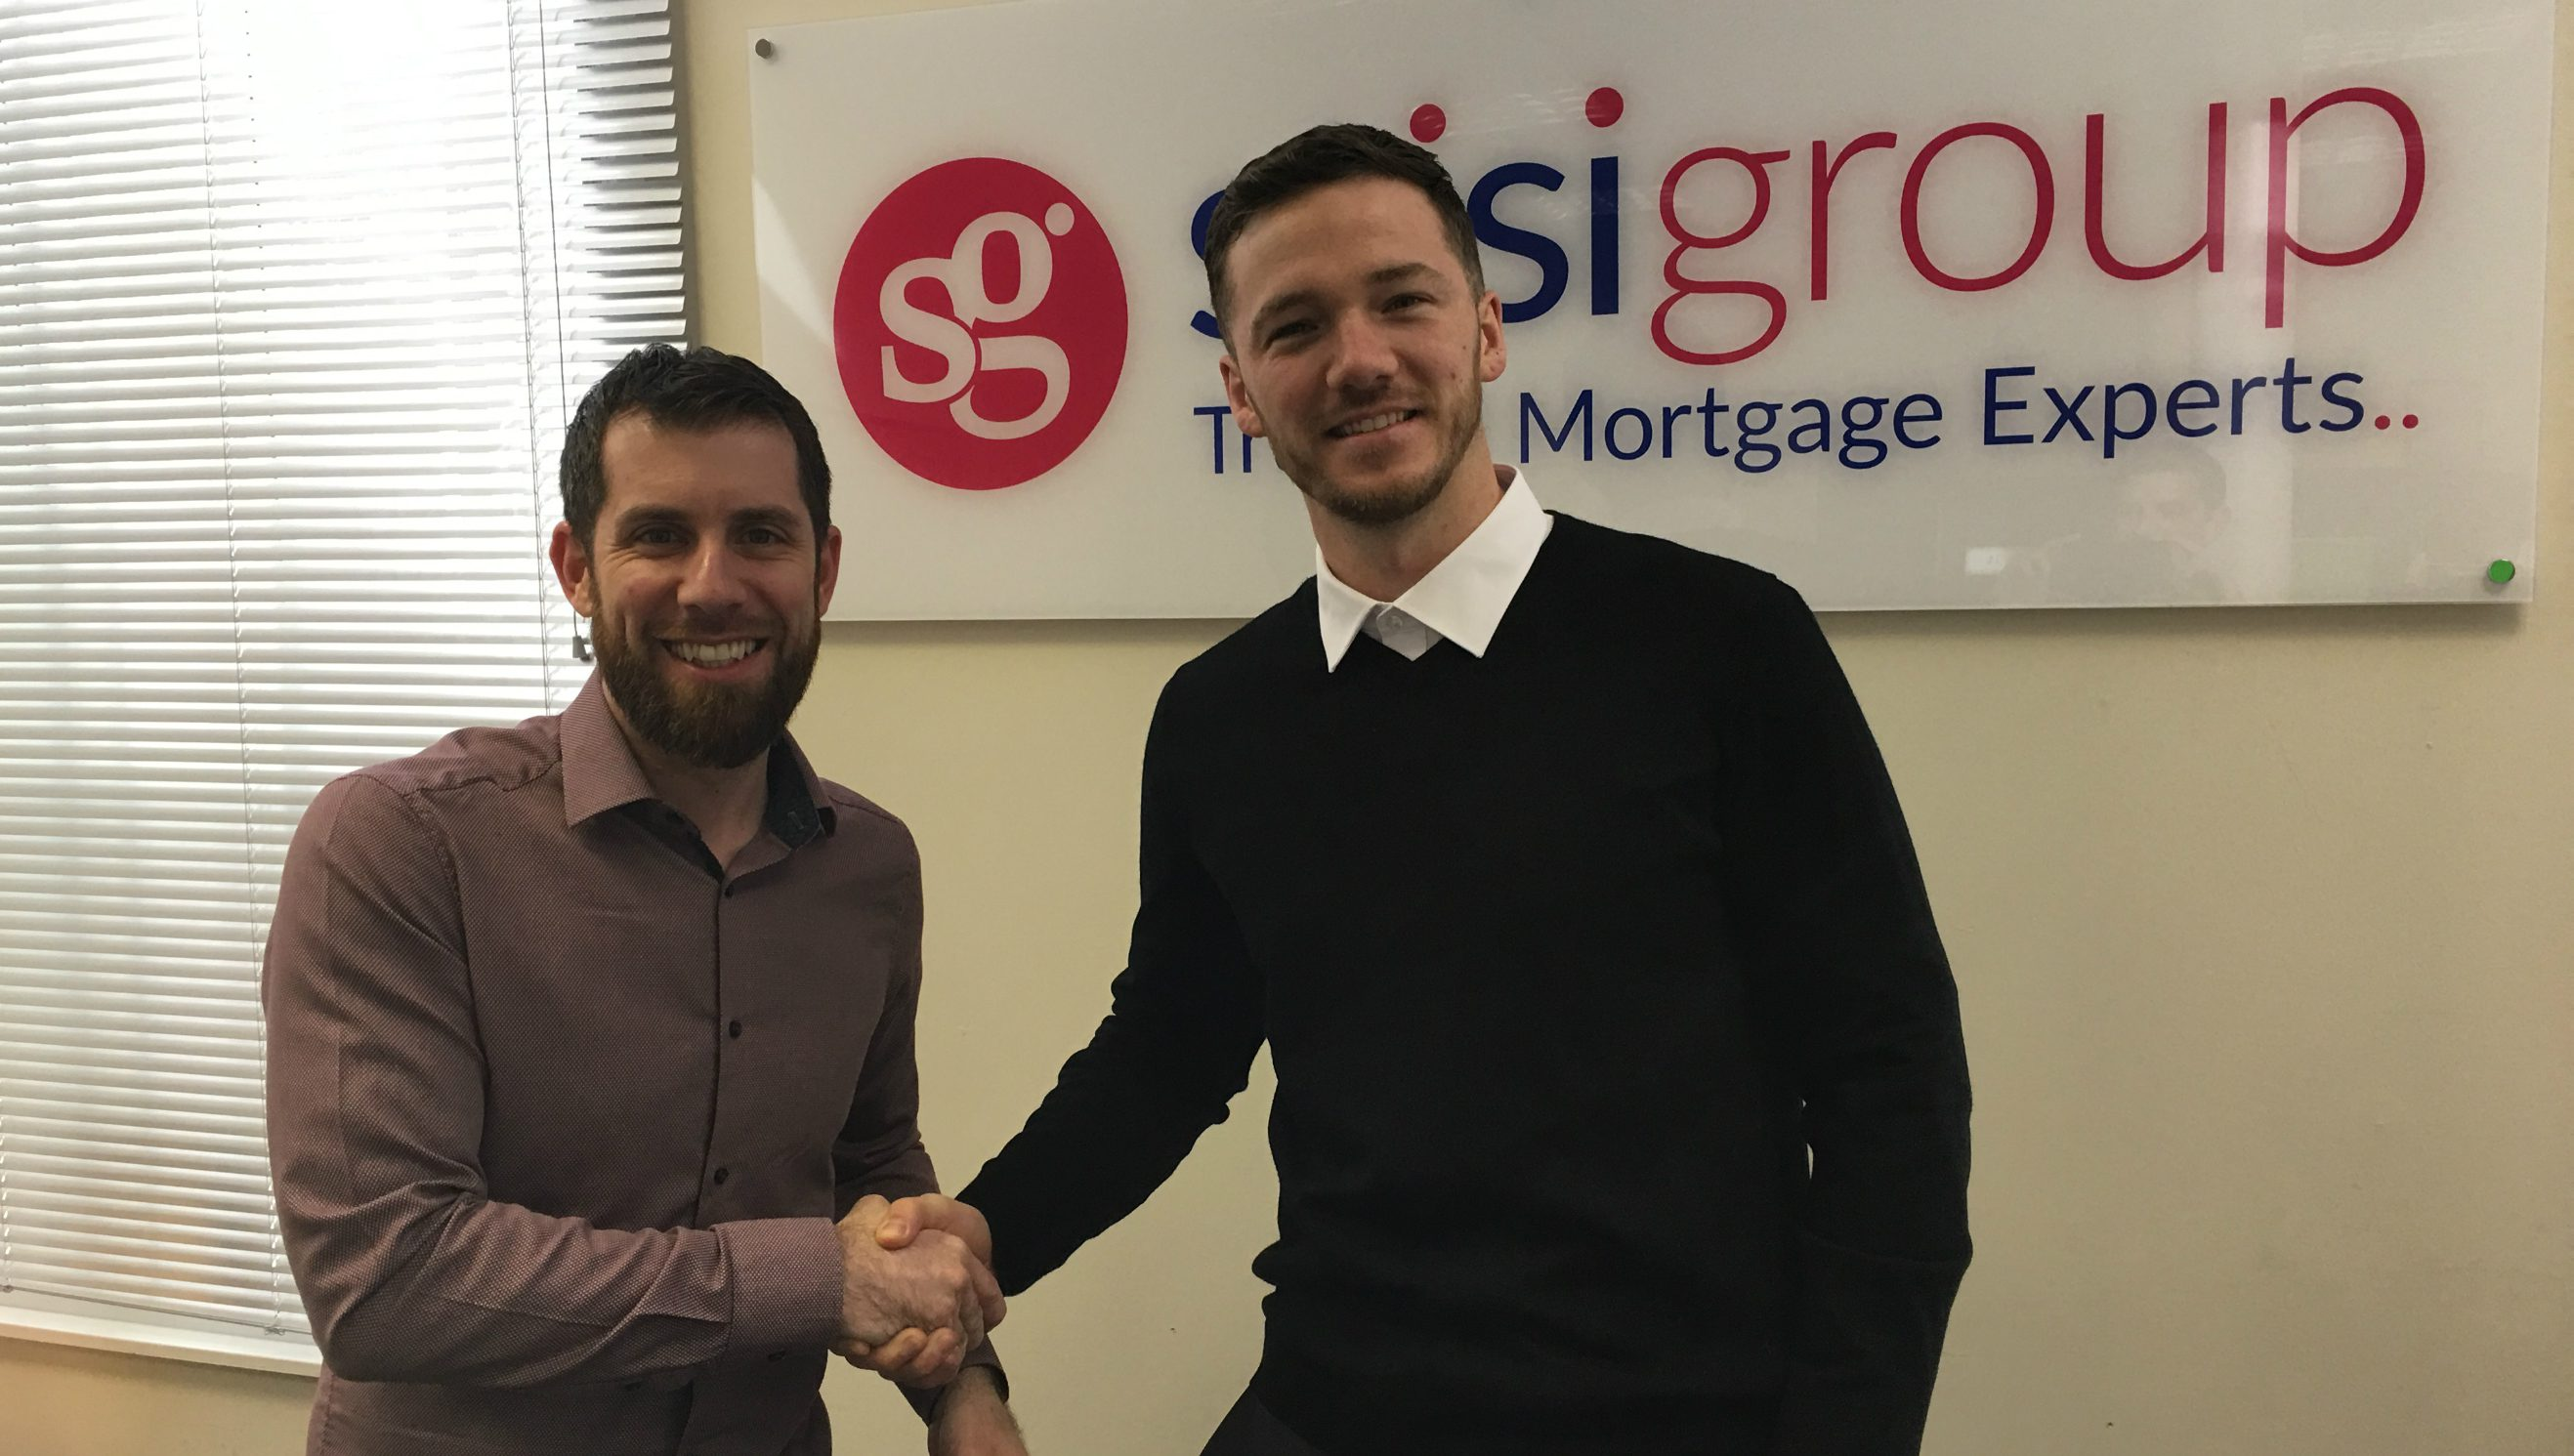 Managing Director Ross Stisi greets new team member Craig Spalding, on his first day with Stisi Group